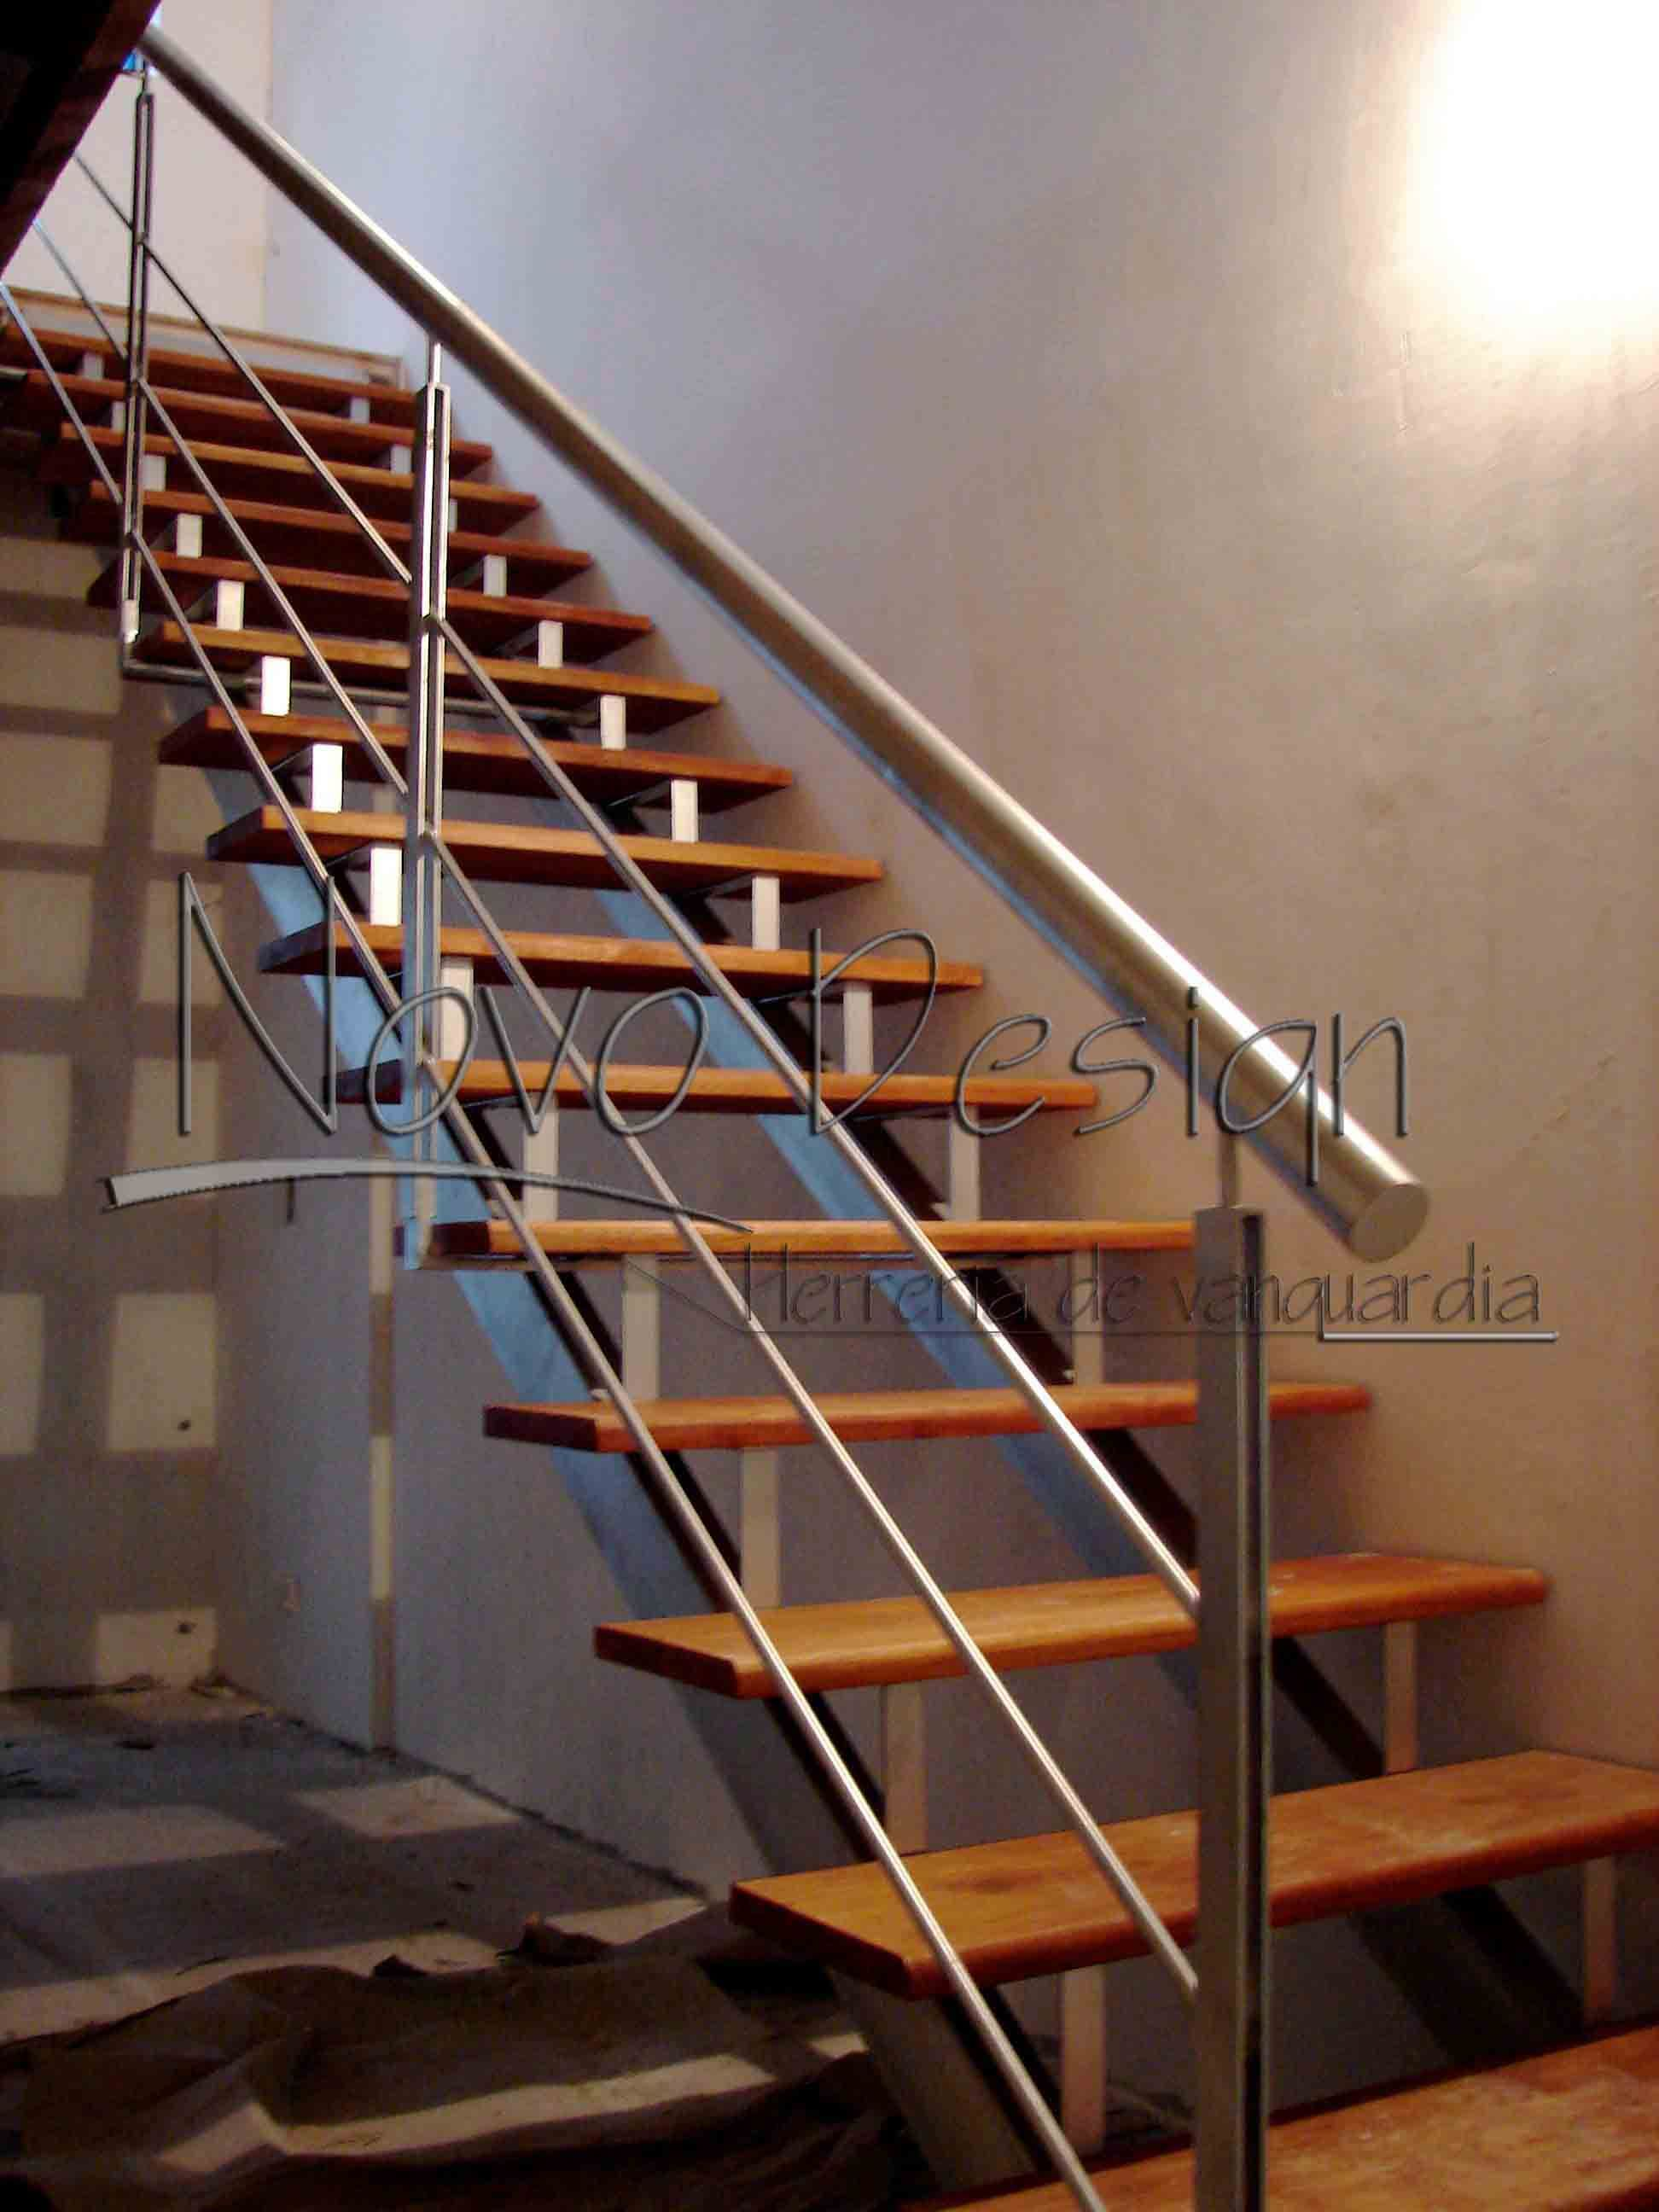 Escaleras rectas de metal para interiores escalera de for Escaleras rectas